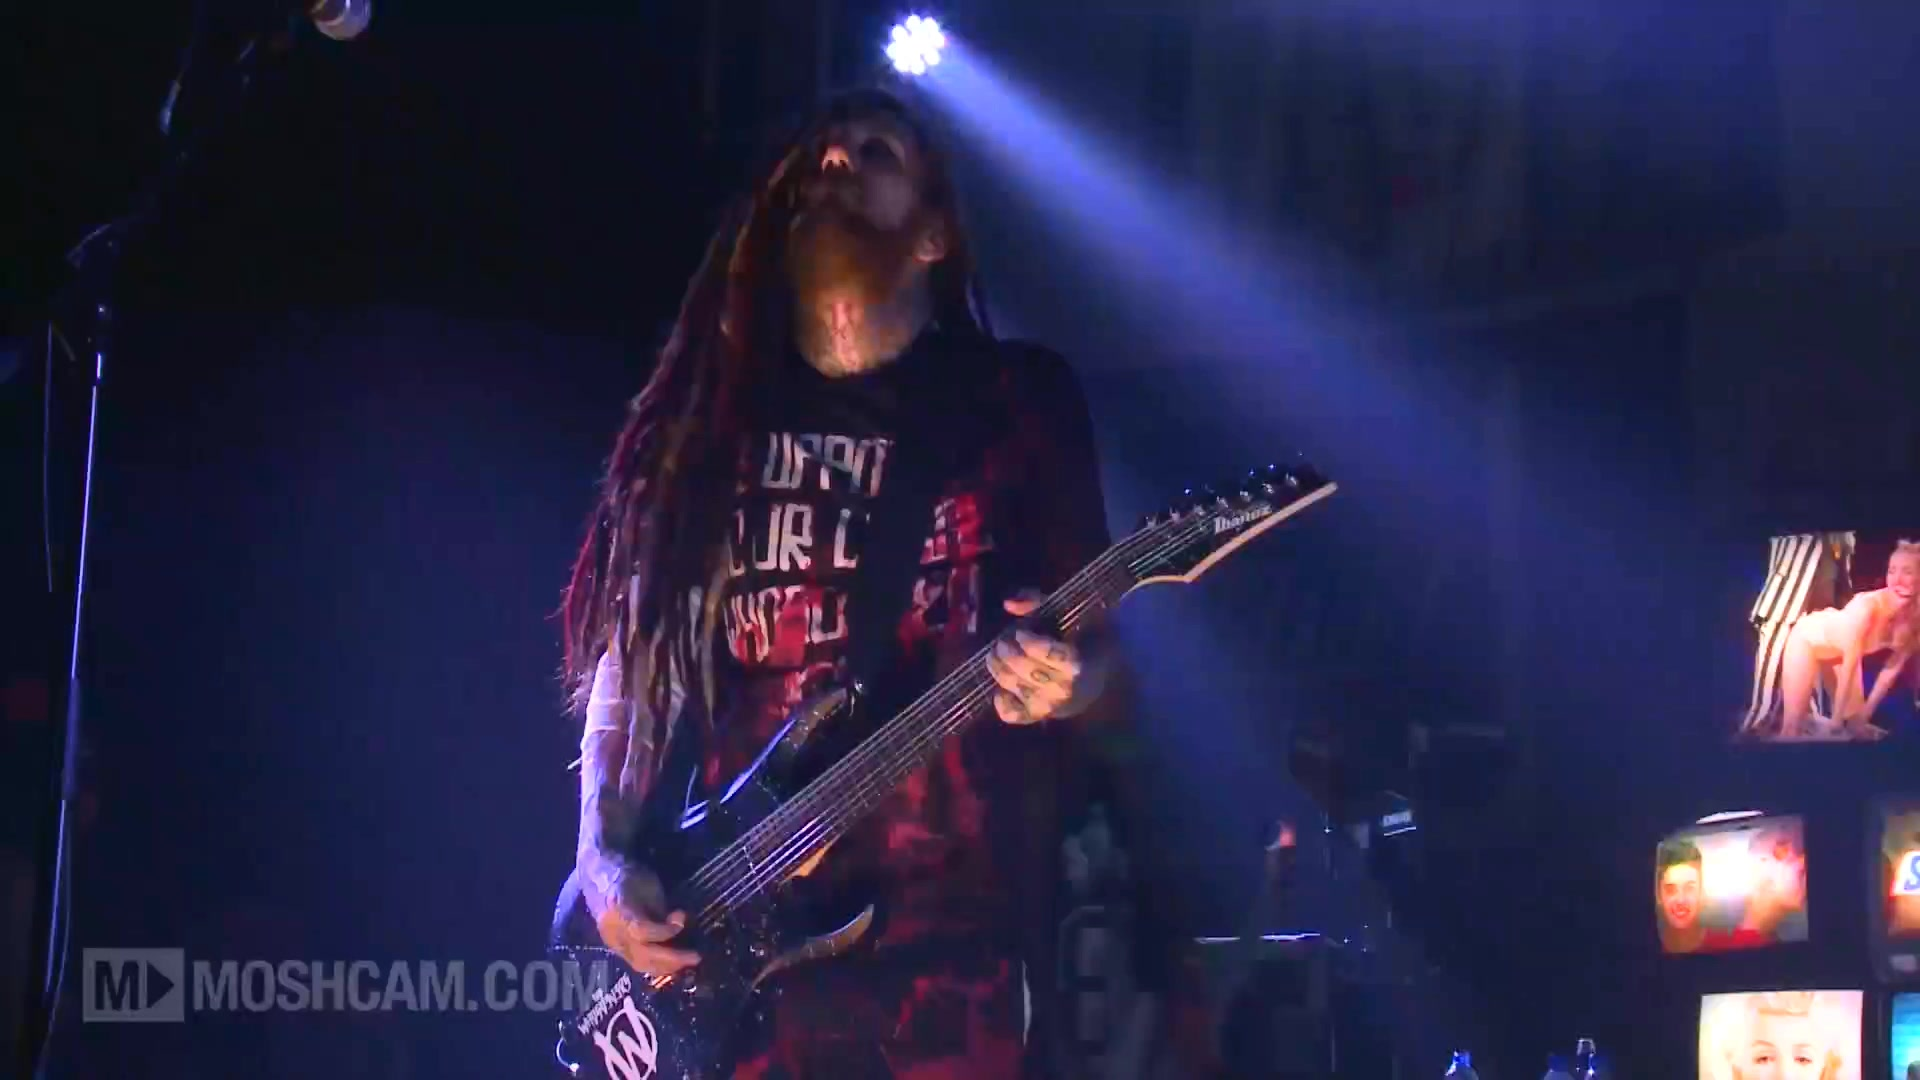 KoRn 2014-05-02 O2 Academy Brixton, London, UK (Webcast HD 1080)